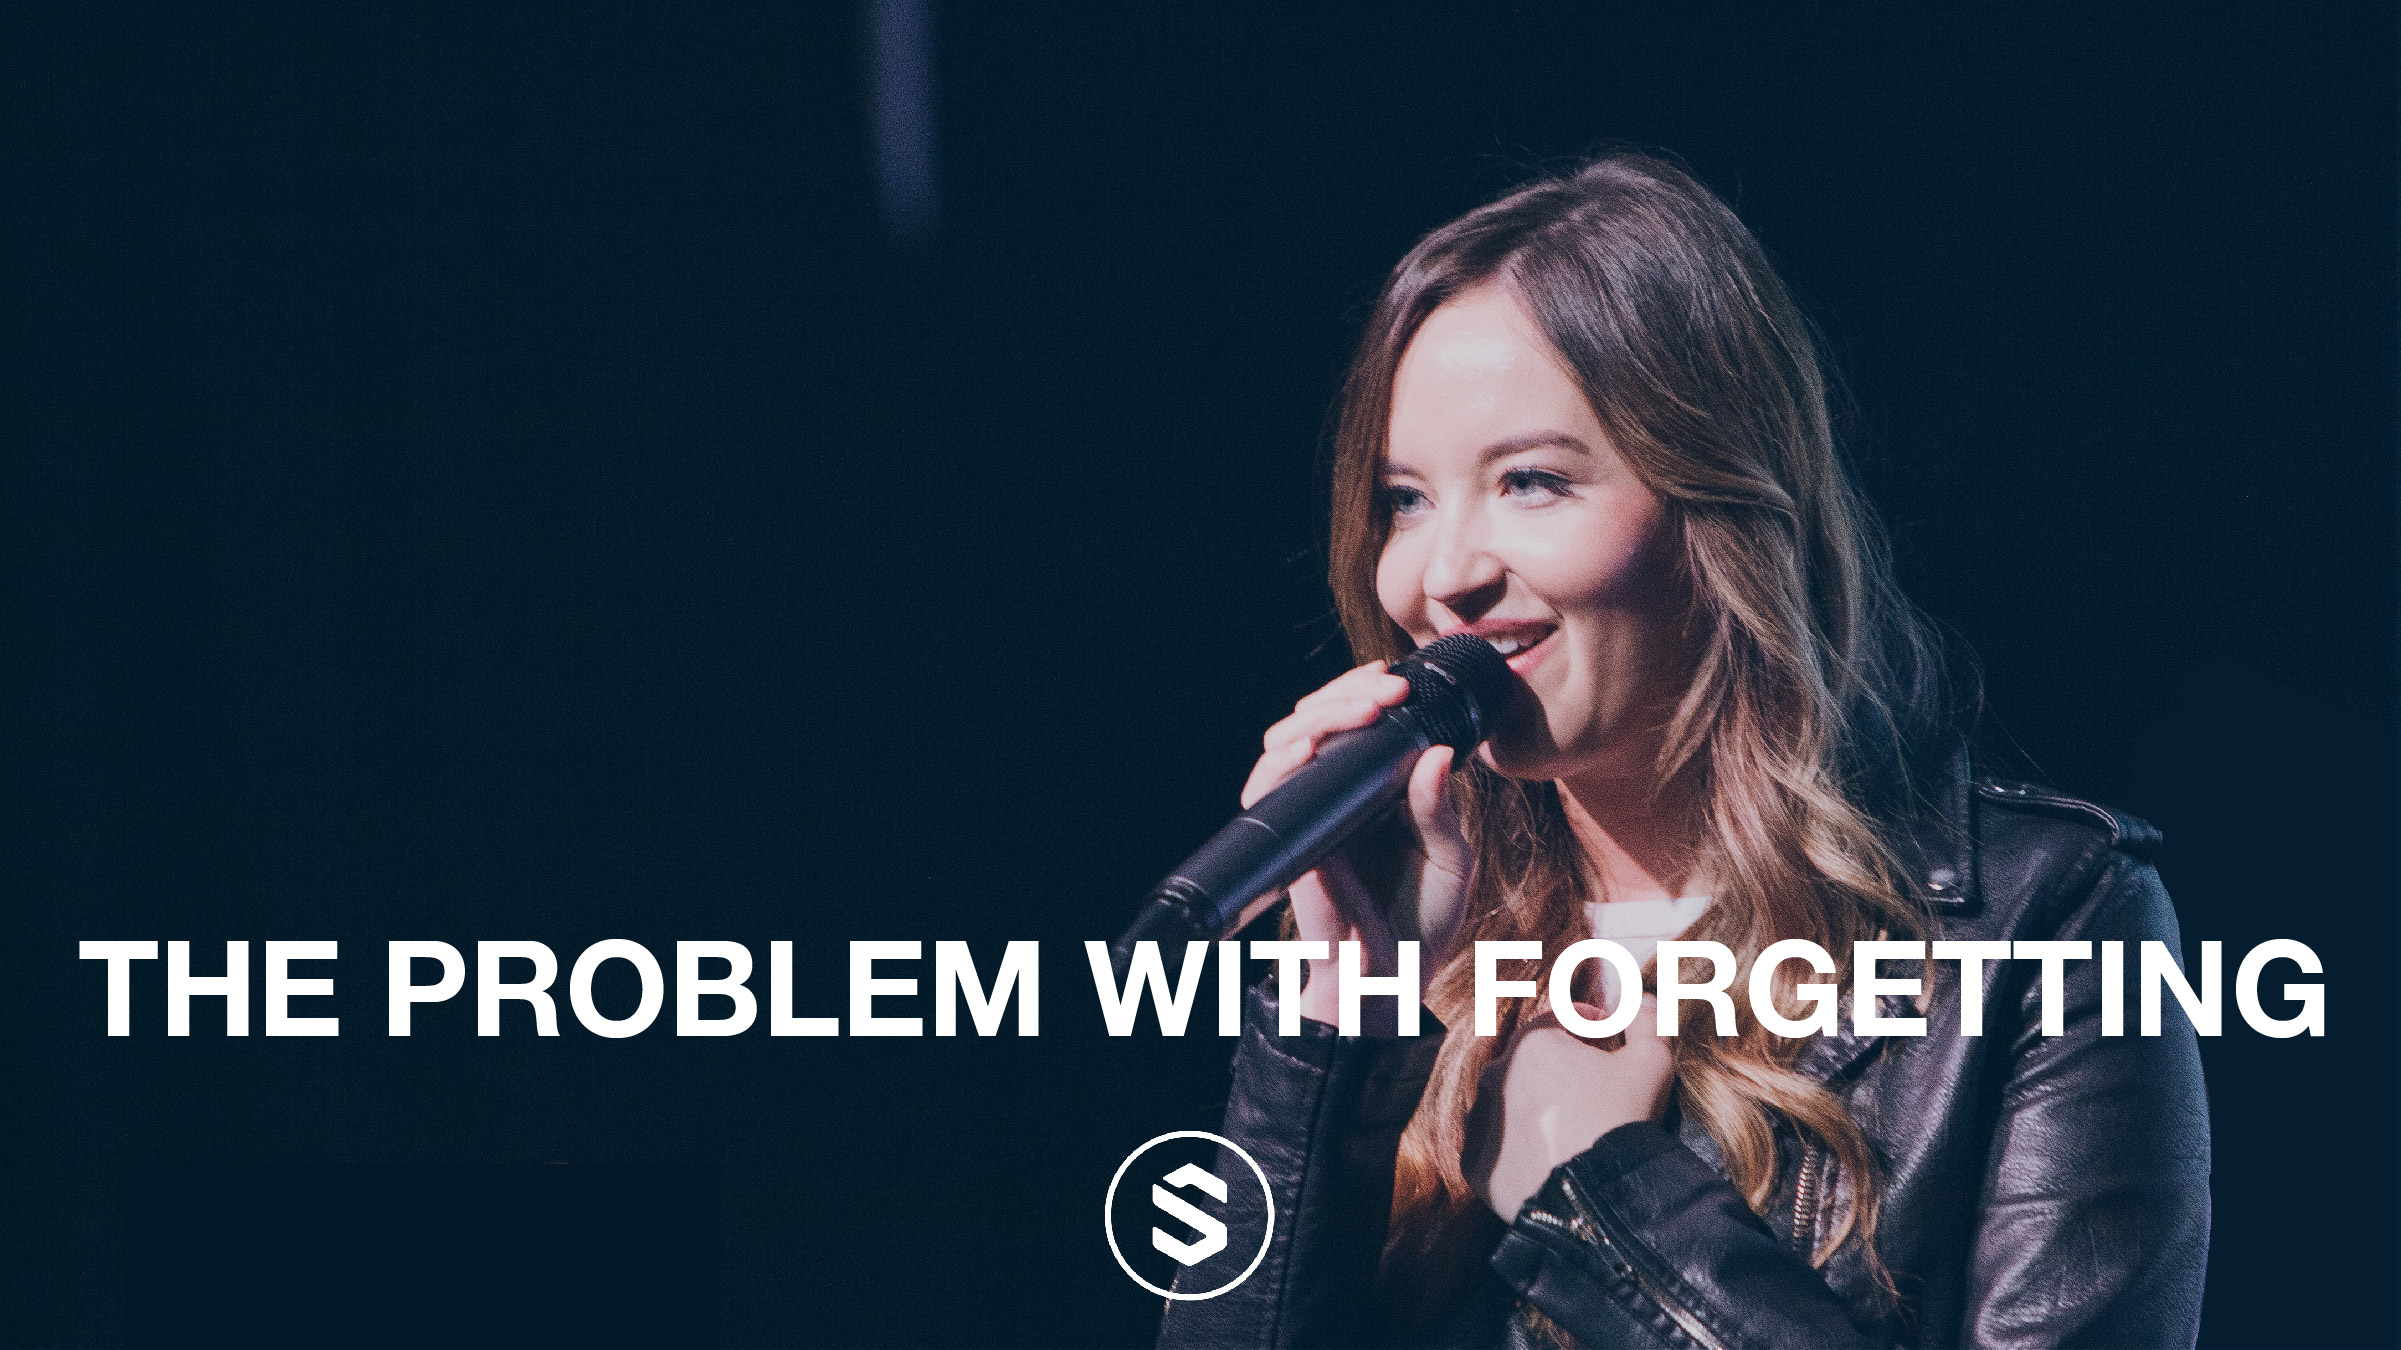 The Problem With Forgetting